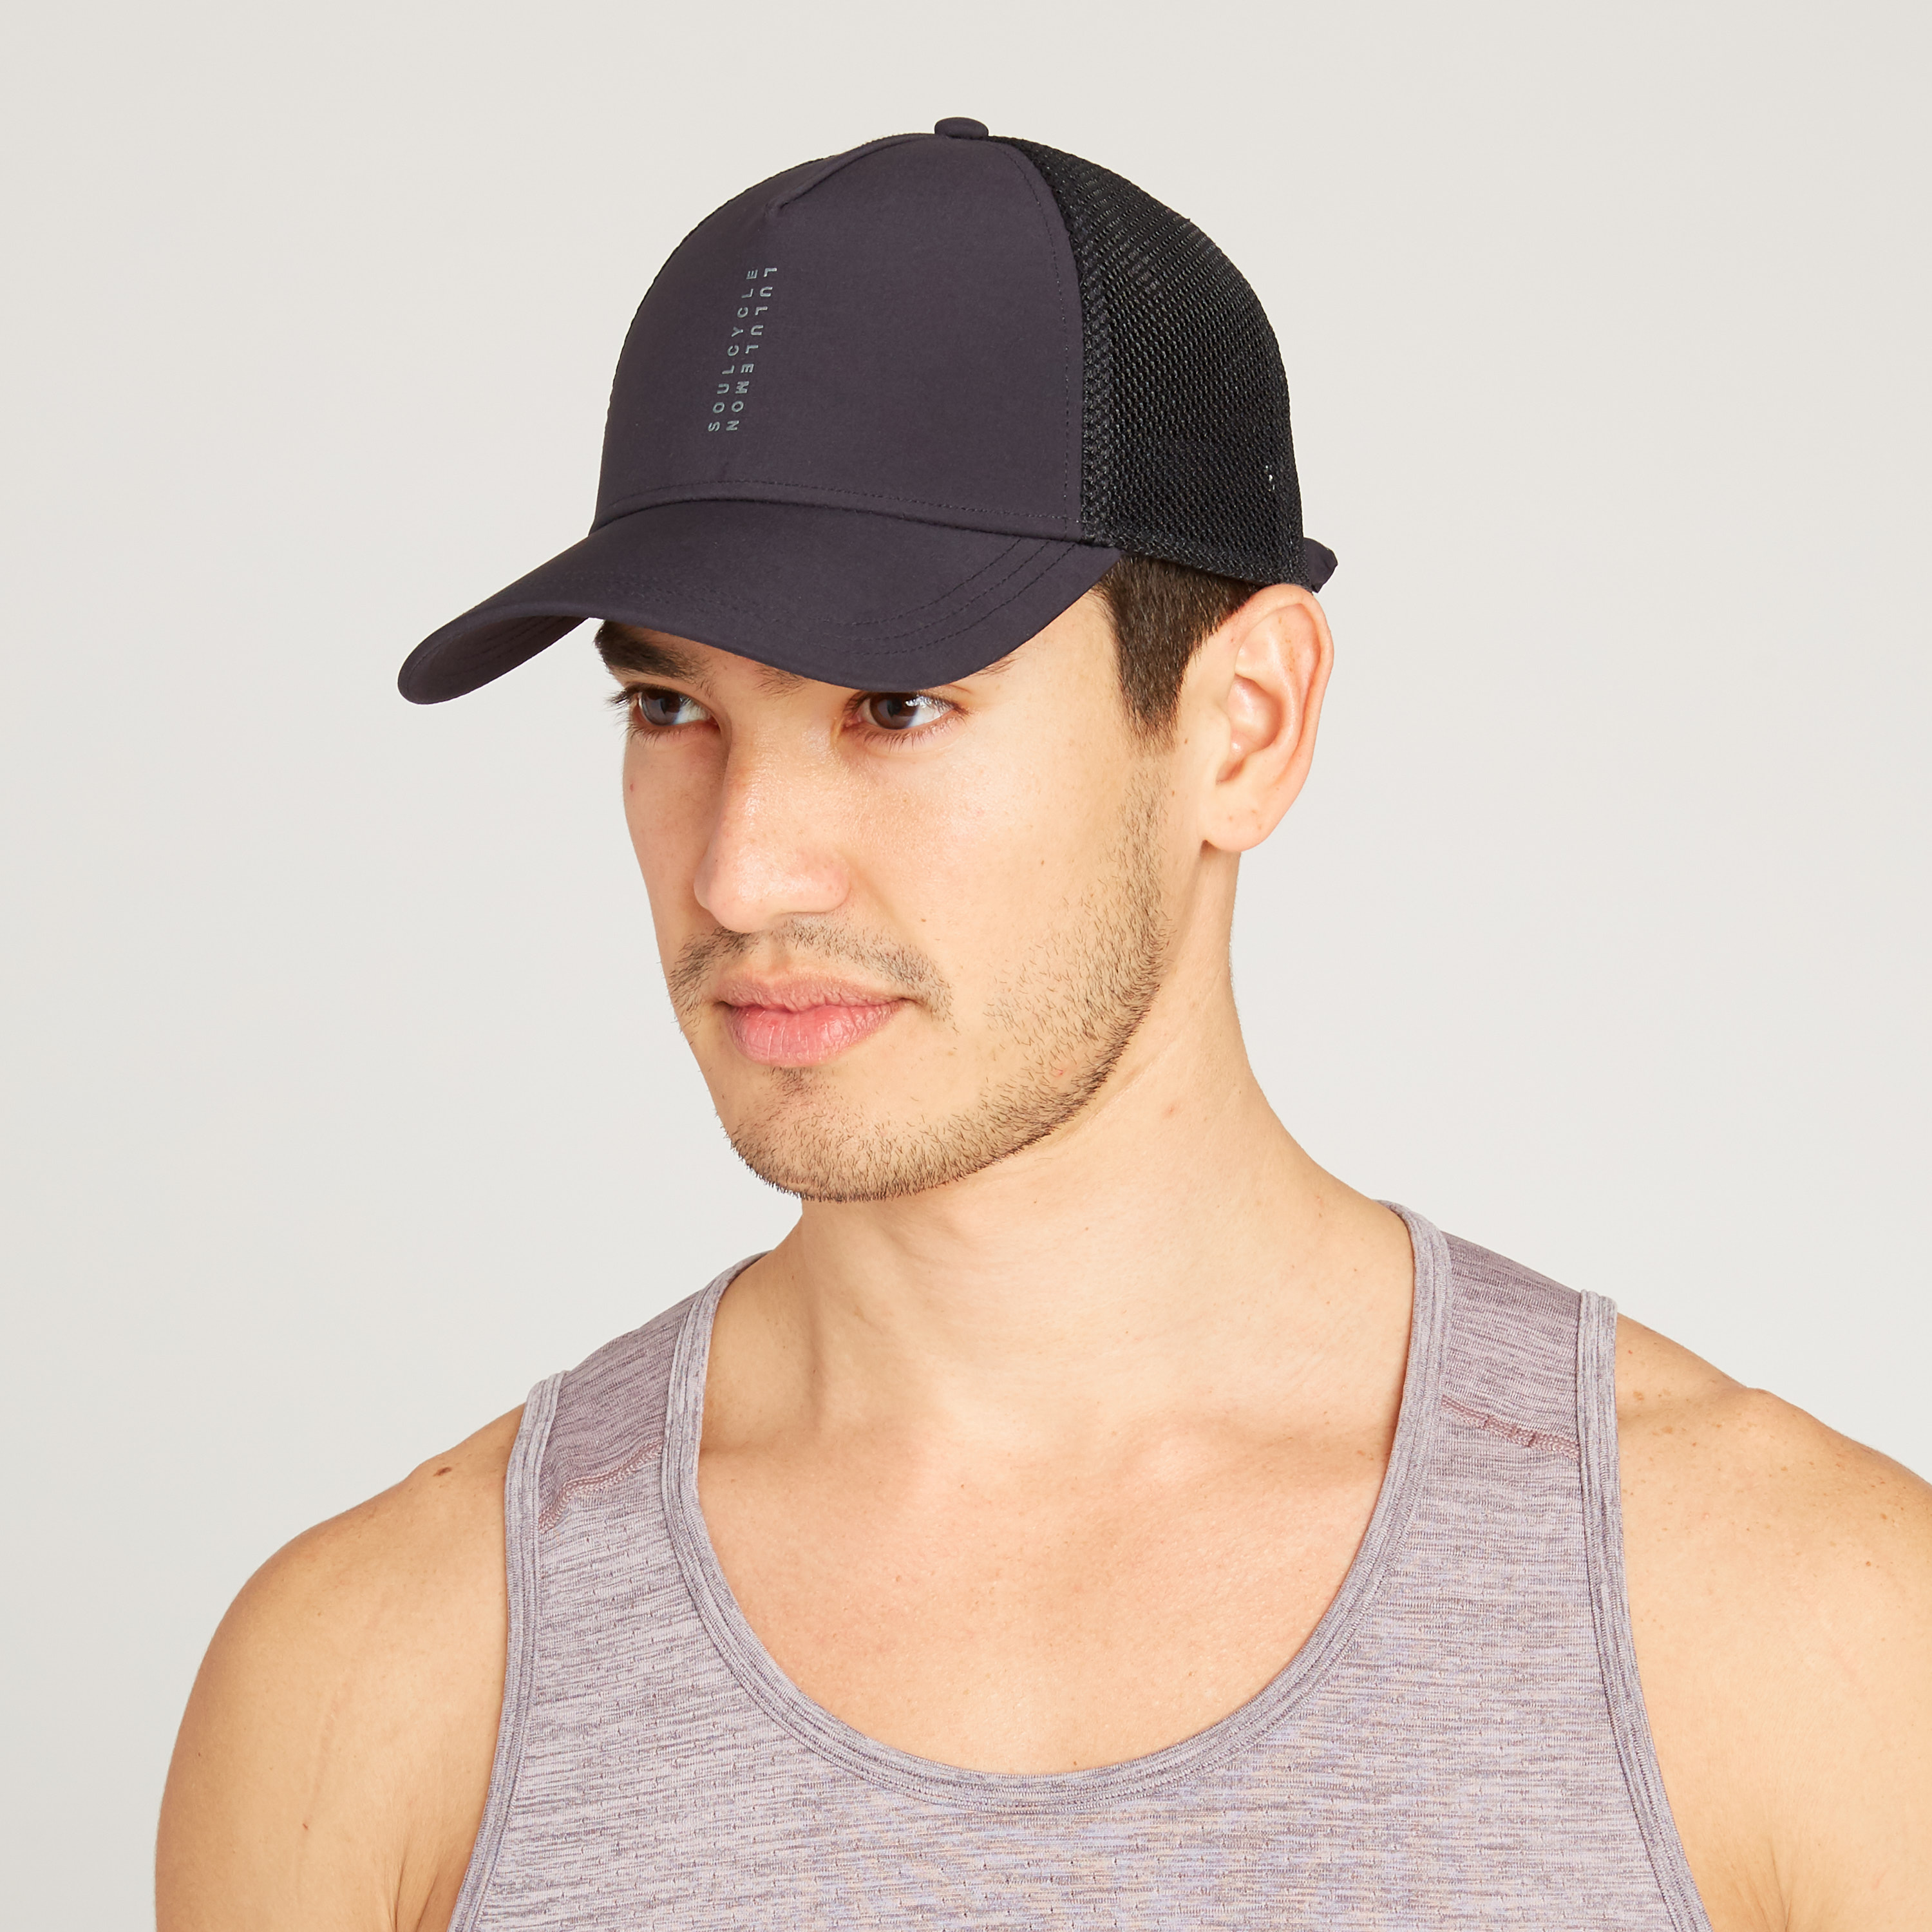 fd55f98371f83 SoulCycle x lululemon Exclusive To The Beat Hat - SoulCycle Shop